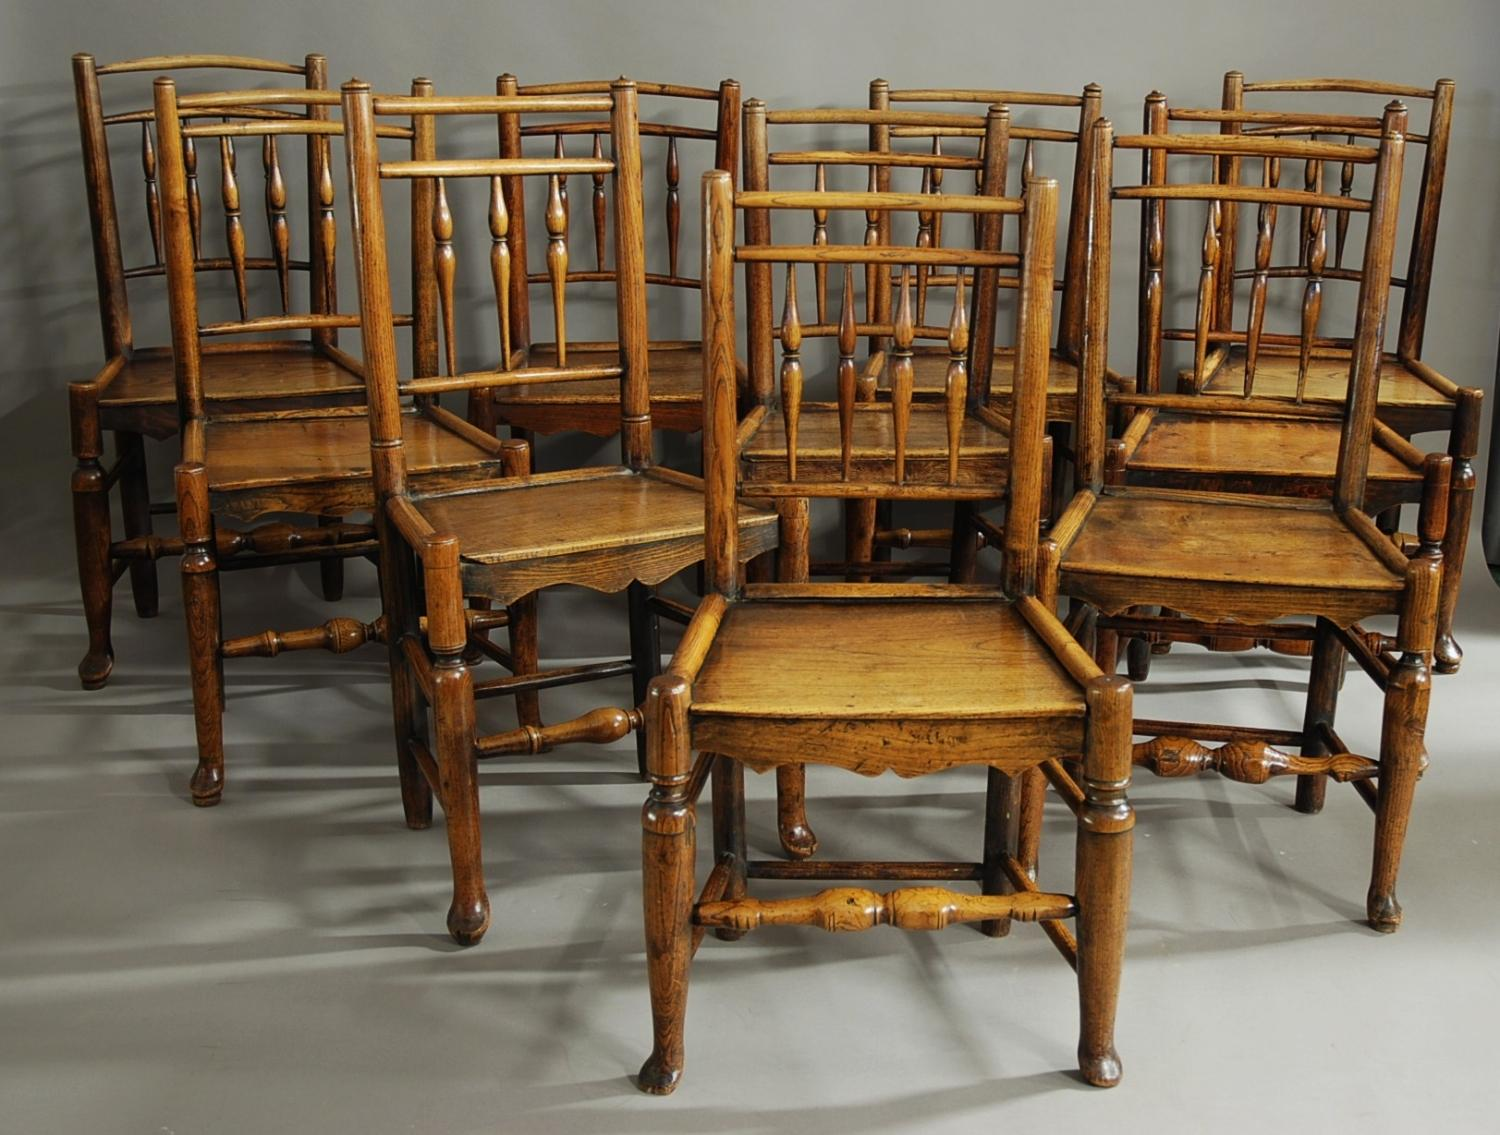 Harlequin set of ten spindle back chairs